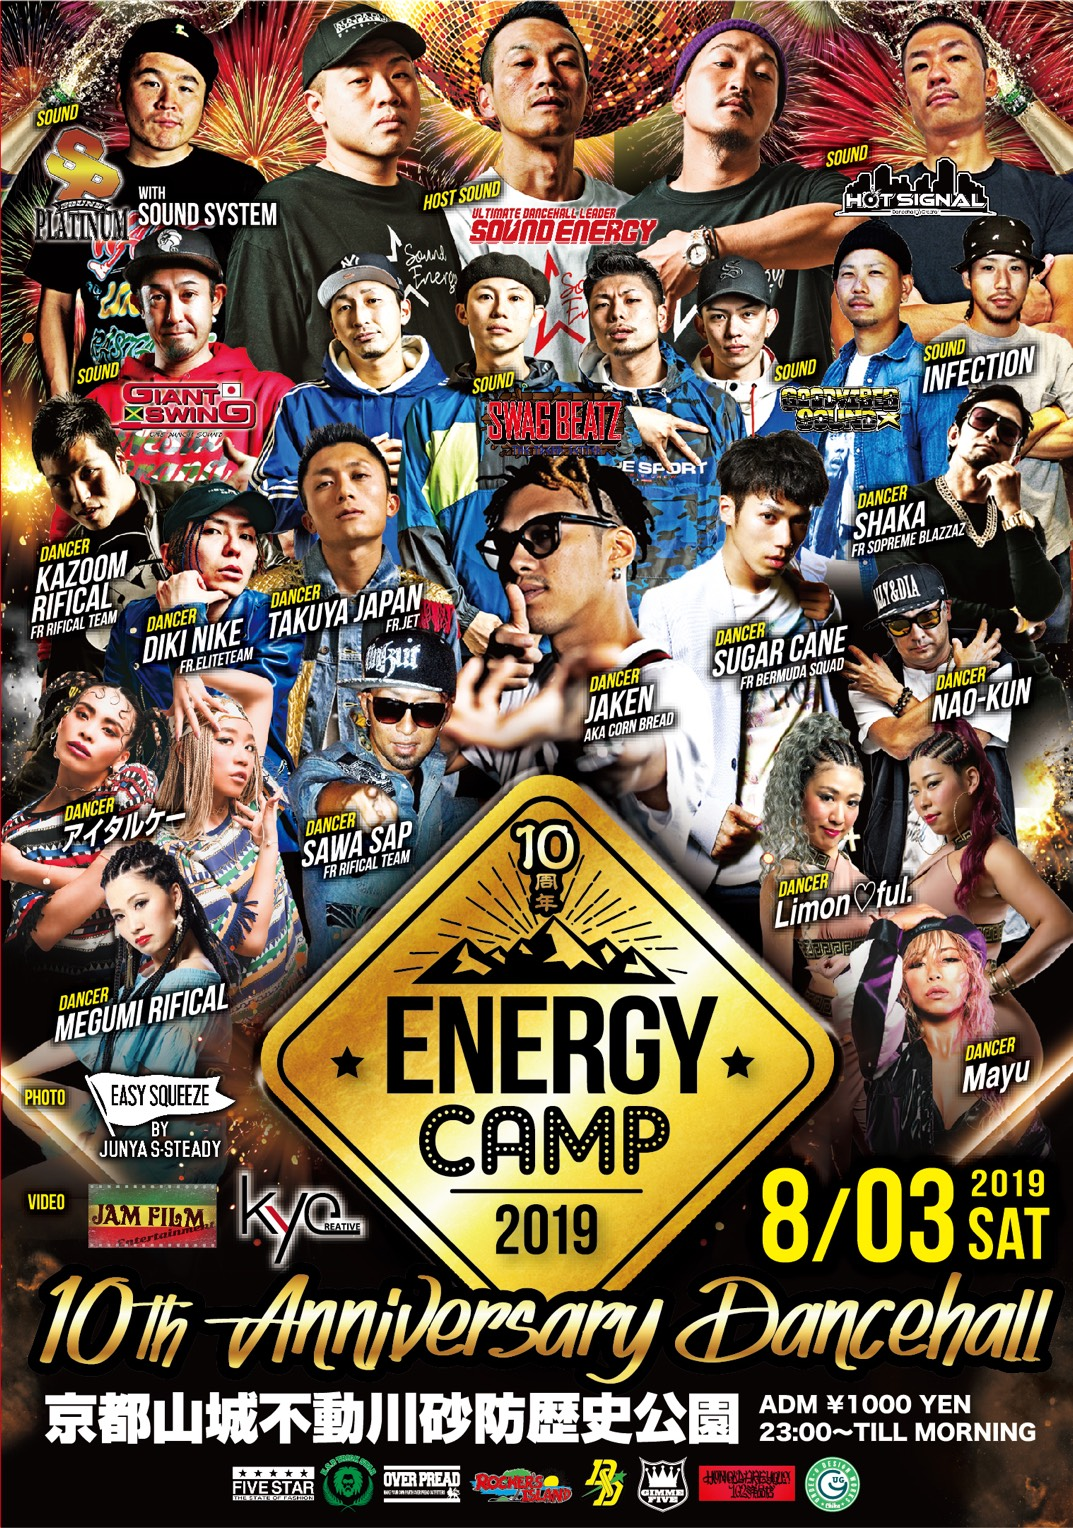 SOUND ENERGY / ENERGY CAMP 2019 -10th Anniversary Dancehall-